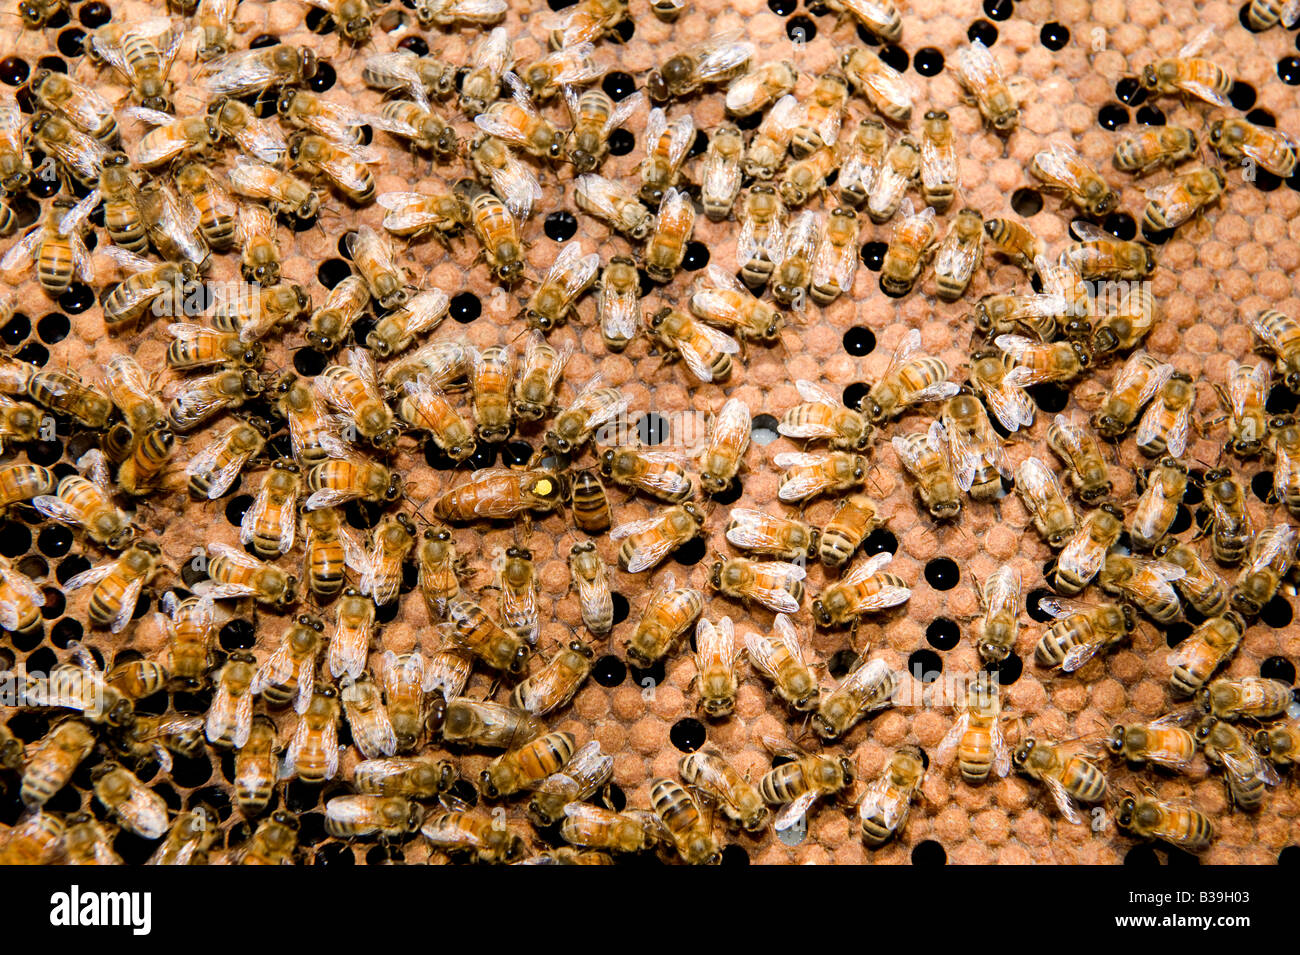 Queen Bee spotted yellow surrounded by workers drone honey bees Apis mellifera on honeycomb - Stock Image